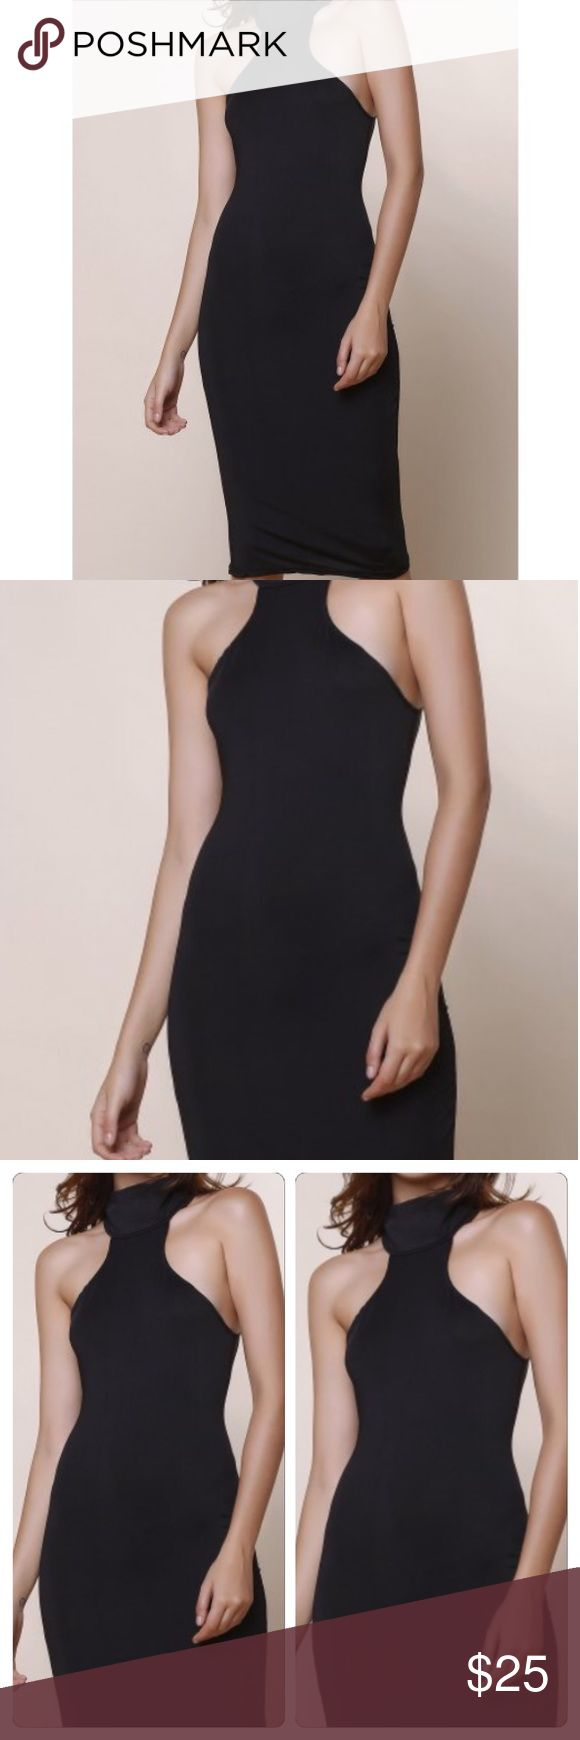 BOGO🔴 Sexy Black Bodycon Dress as worn by Mrs. West herself. Sizes run approximately one size small. XL = Large ✅ Please see size chart. I am not able to give opinions on if items will fit. Please use the chart along with your body type for best approximations ✅ OSMF= Small/Medium. This is not from the Kardashian clothing line ✅ Dresses Midi